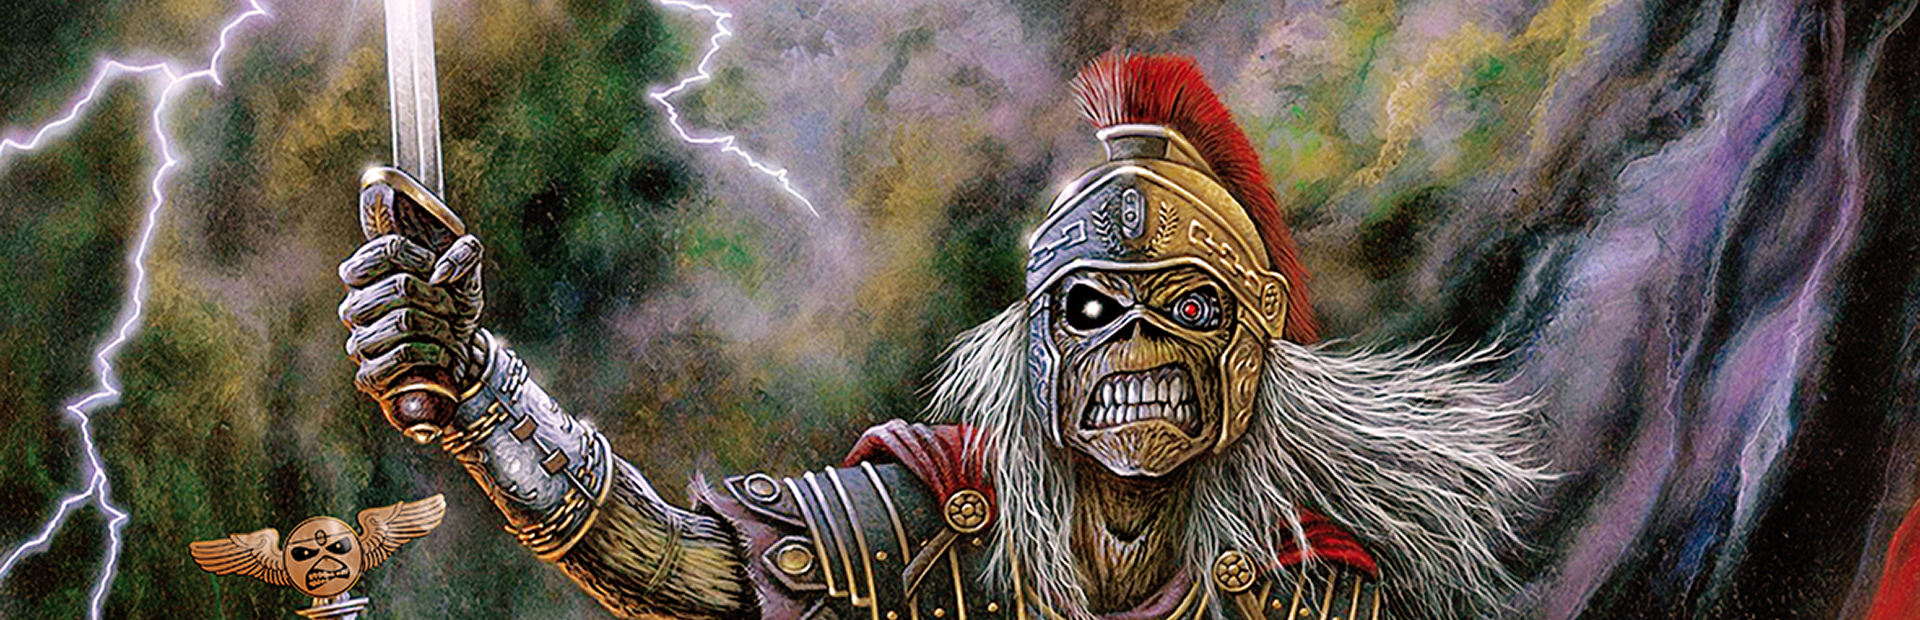 INVADERS - Iron Maiden Tribute